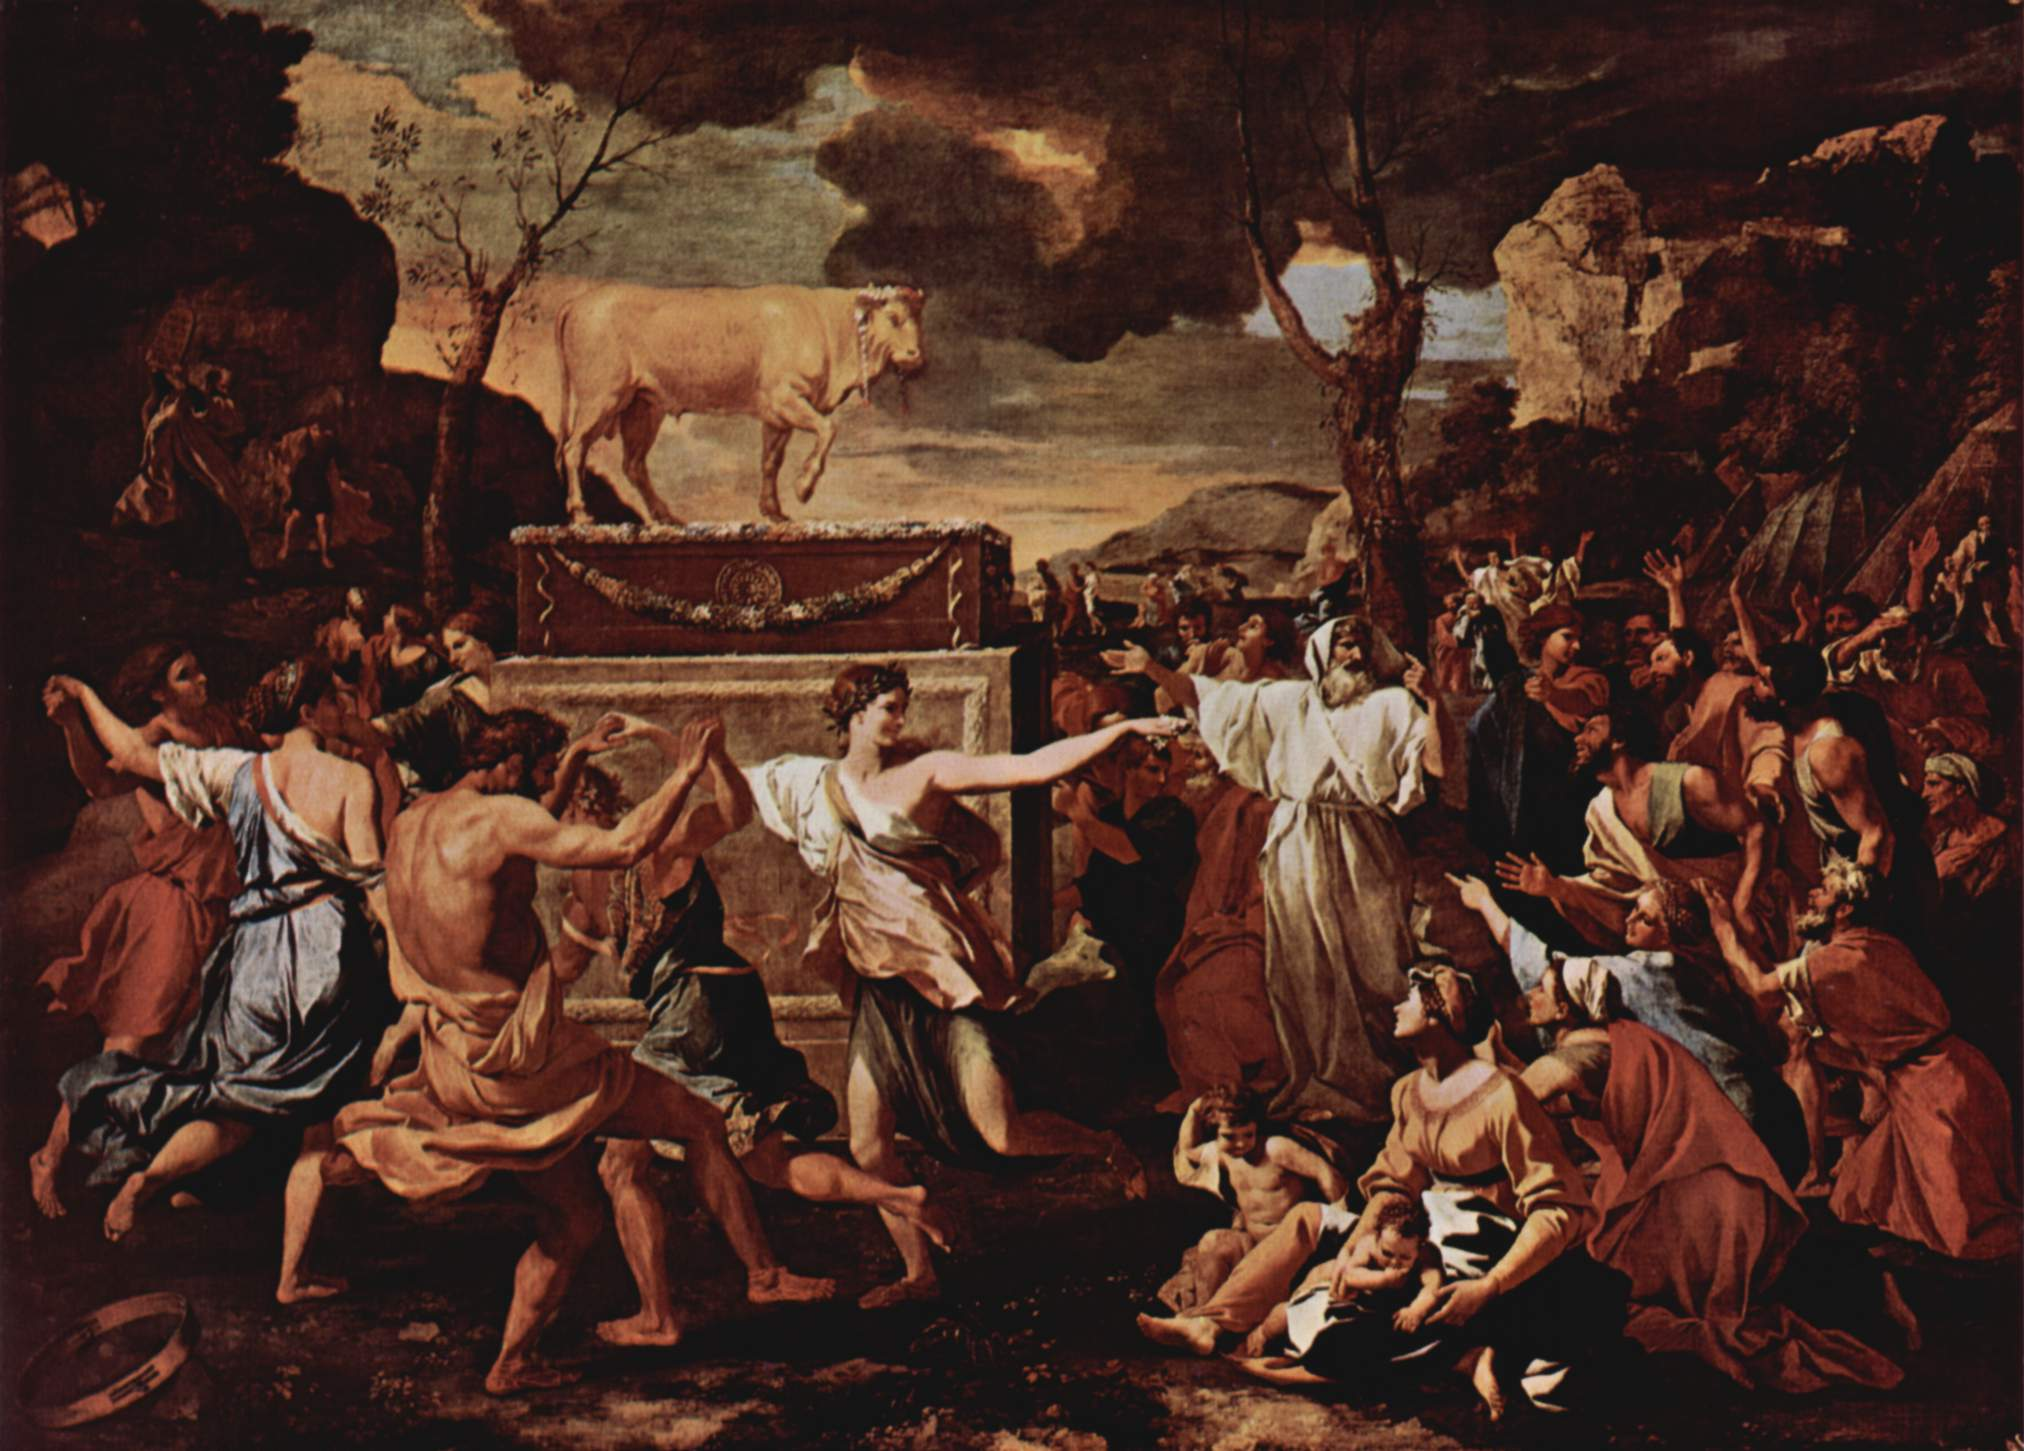 File:Nicolas Poussin - The Adoration of the Golden Calf alt.jpg